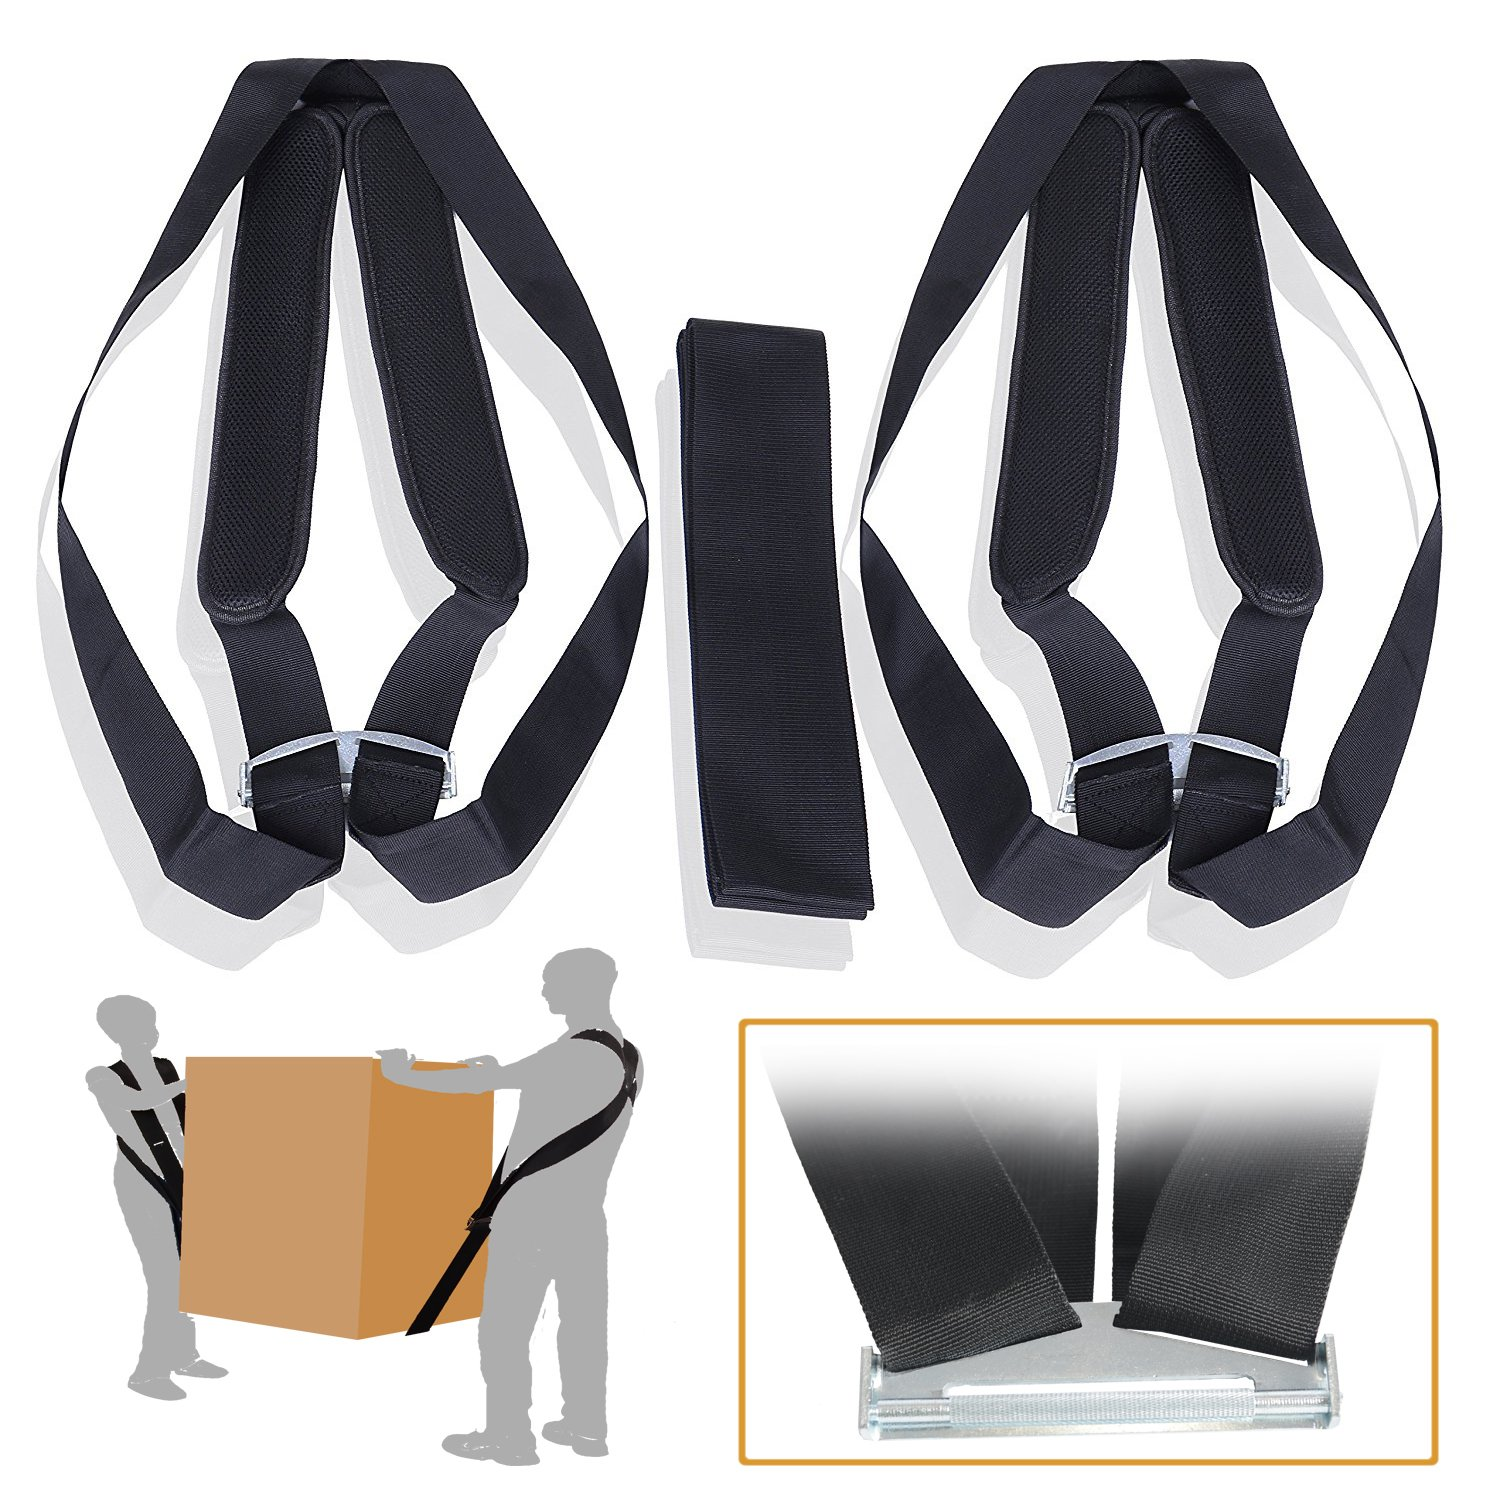 Lifting Straps SET with Shoulder Pads – Weight Carry Harness – 2 Person Dolly Belts Furniture Moving -Weight Lifting Ergonomic Tool for Straight Position and NO Back Pain - Heavy Duty System - ERGOGO ErgogoFree